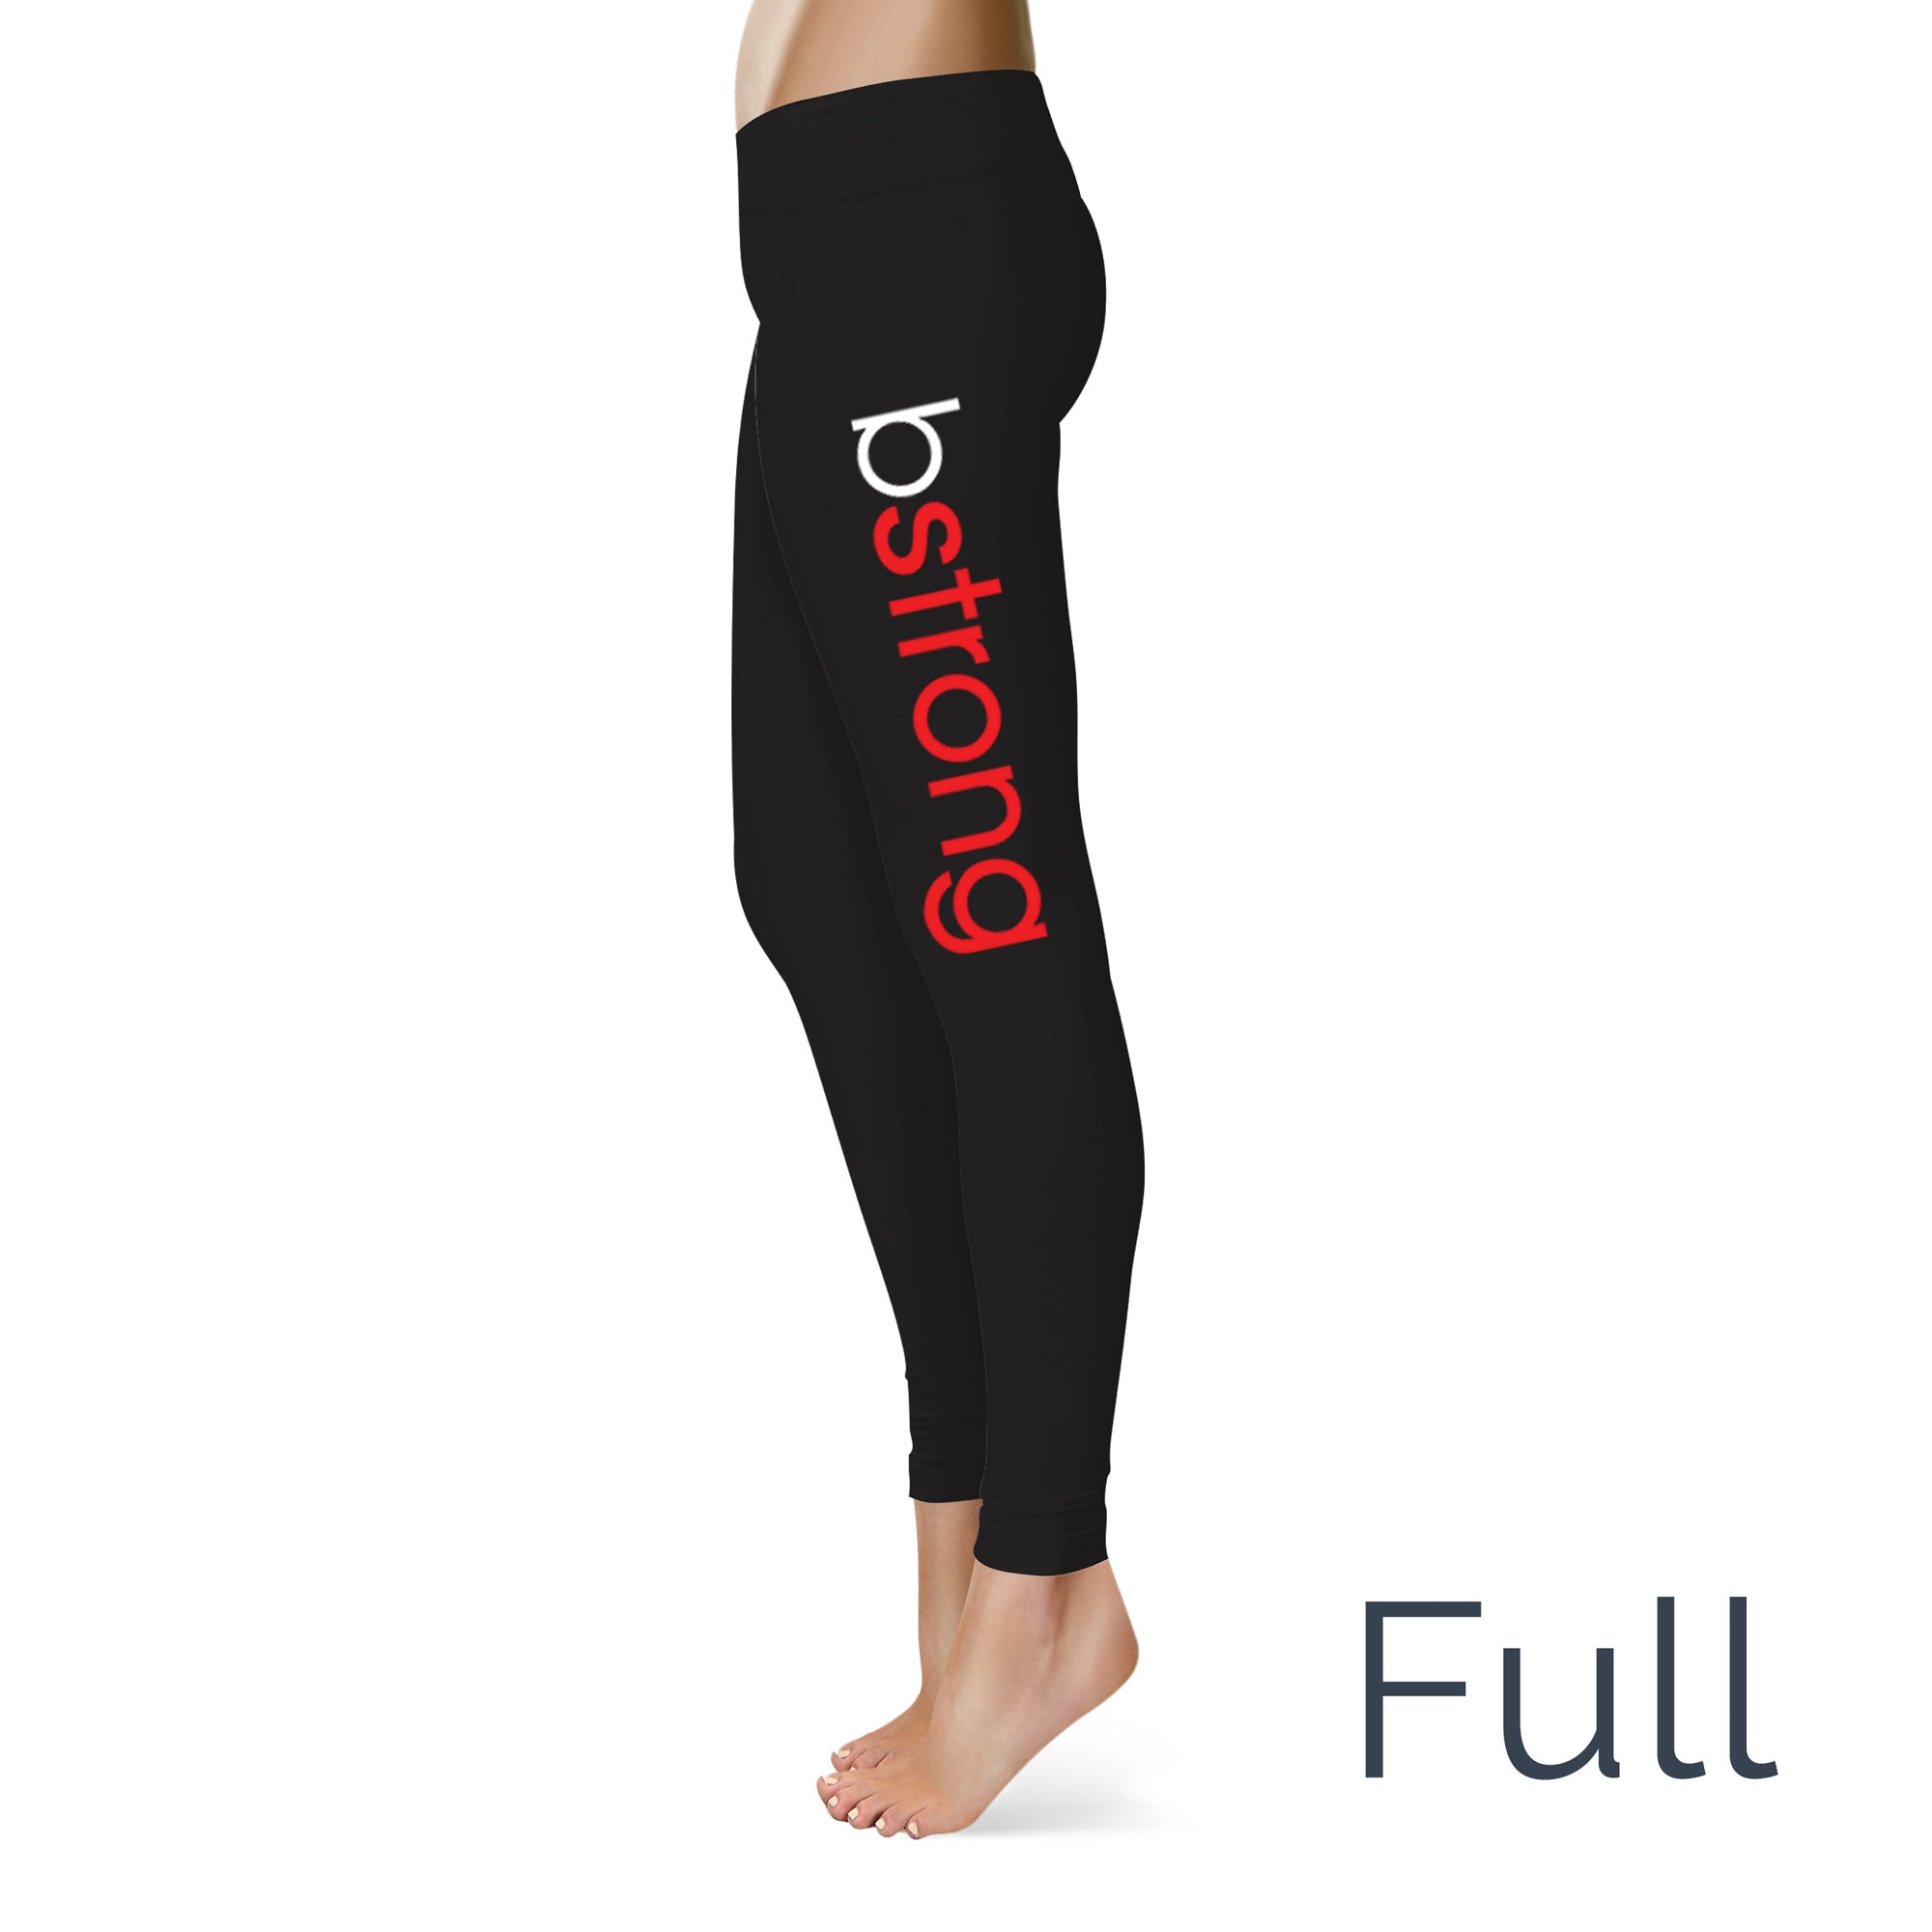 7ec790b4fae bstrong - Full Length Leggings - bstrong by Bethenny